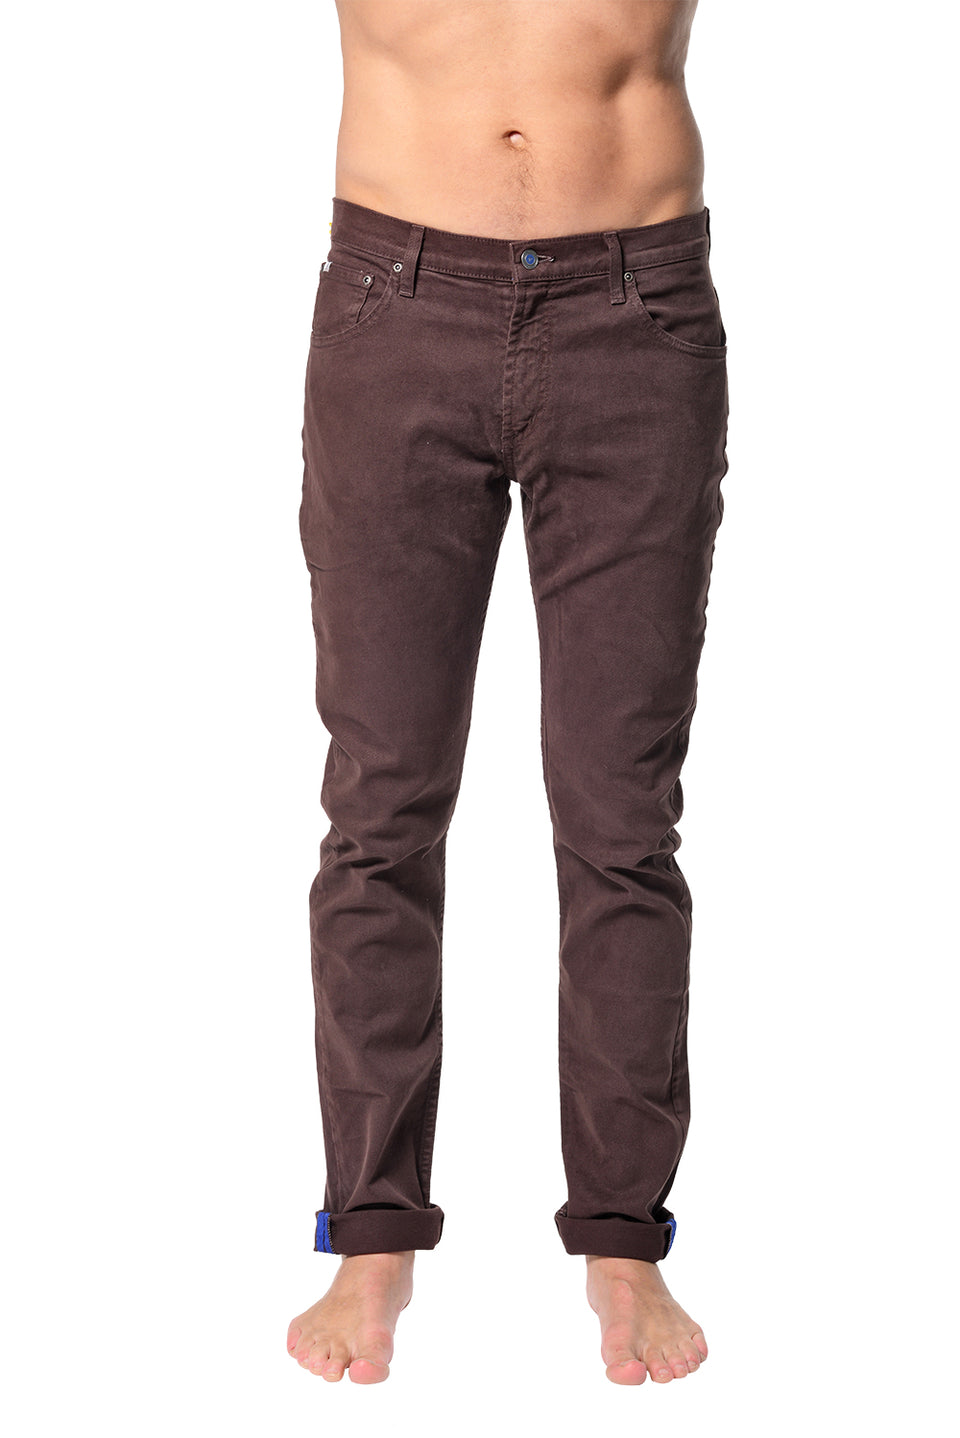 5 Pocket Slim Buck - Brown